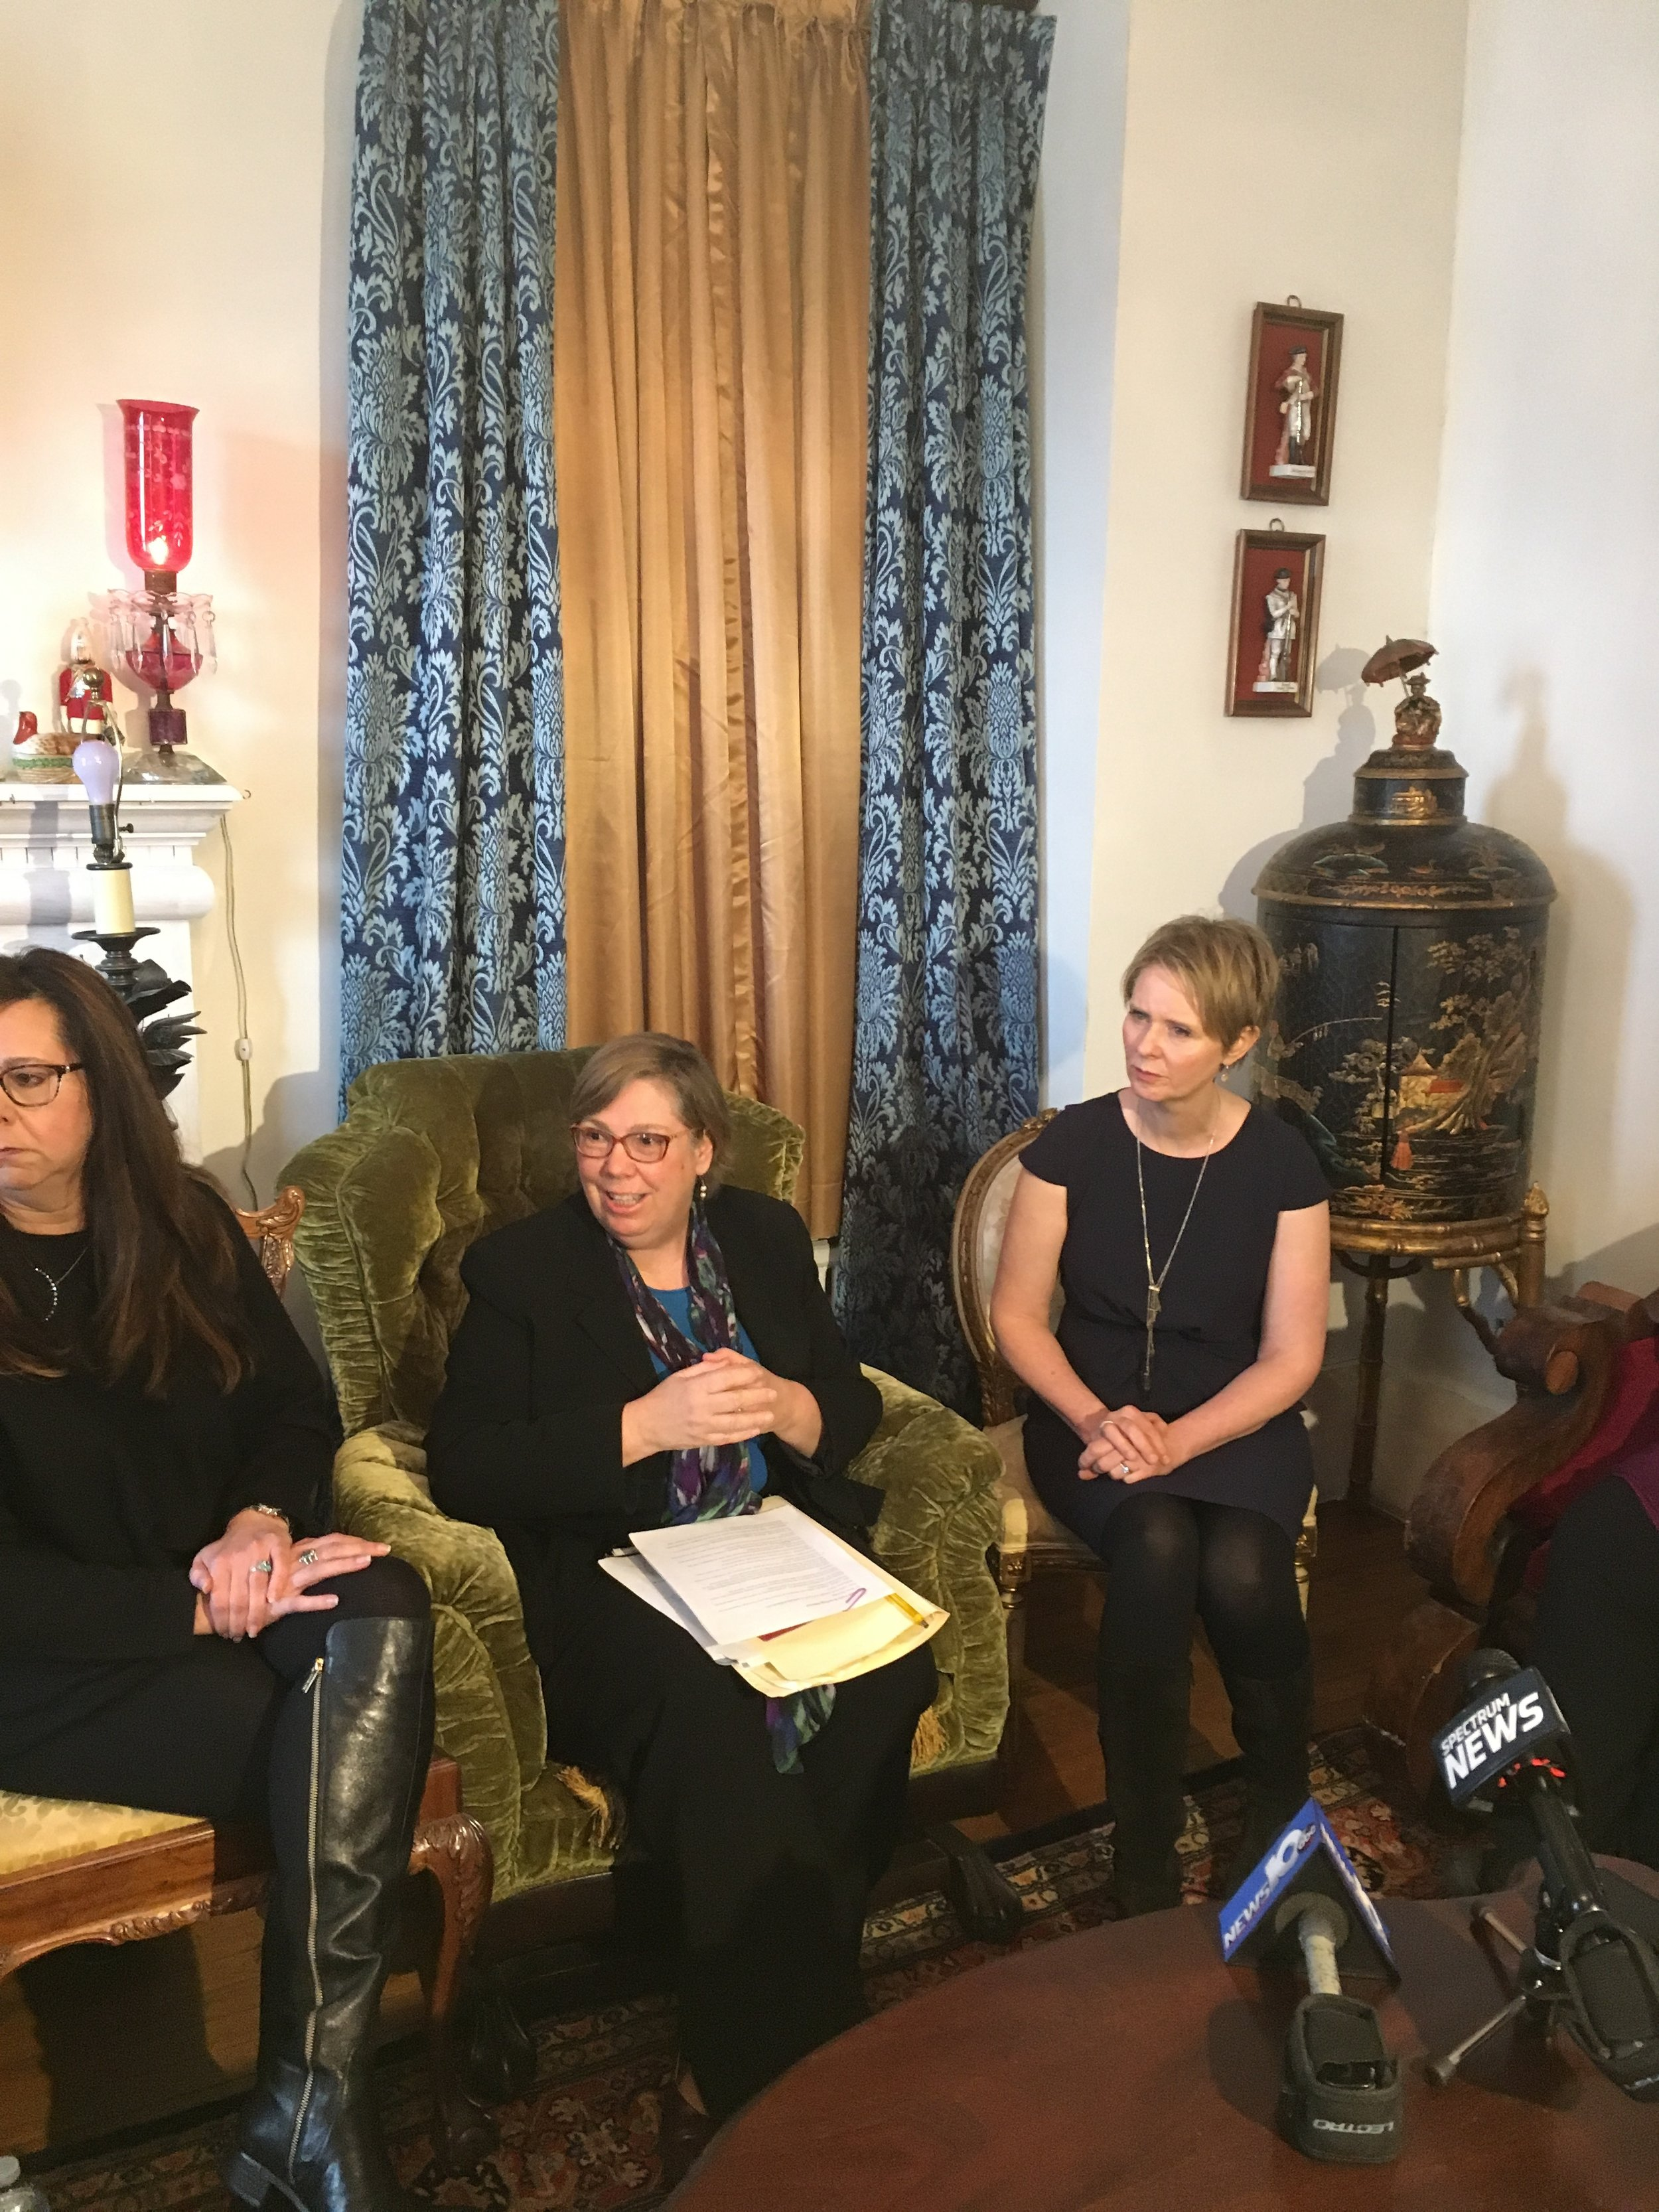 From left to right: Hoosick activist Michele Baker, former EPA Regional Administrator Judith Enck, and candidate Cynthia Nixon.